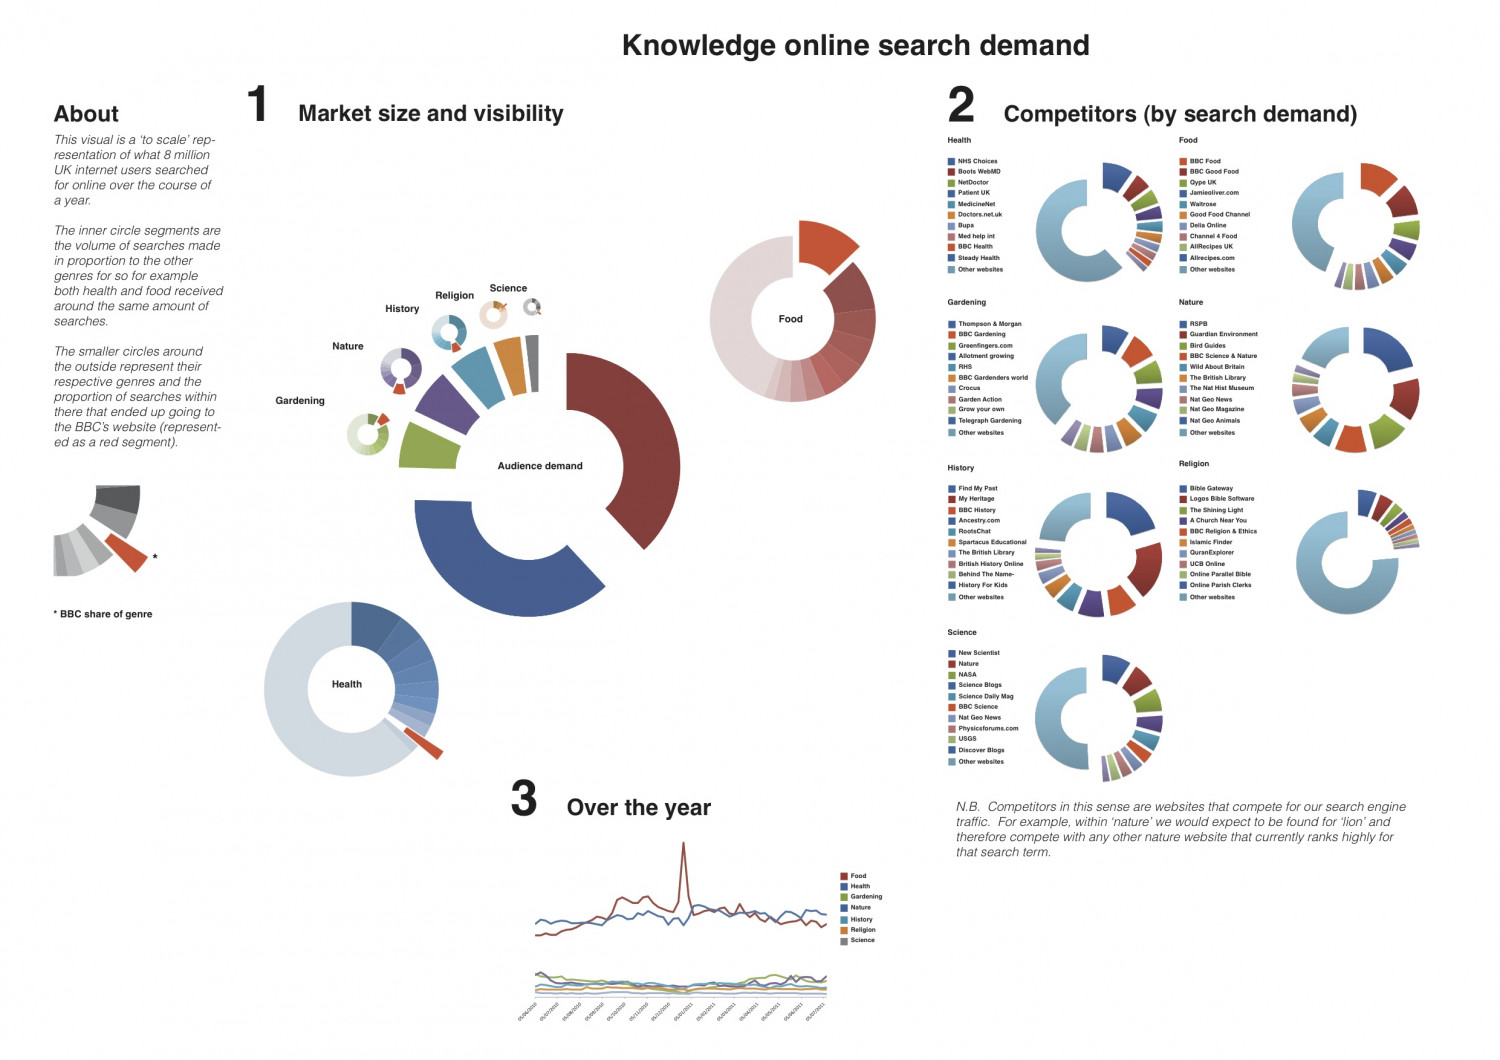 Our thirst for knowledge Infographic